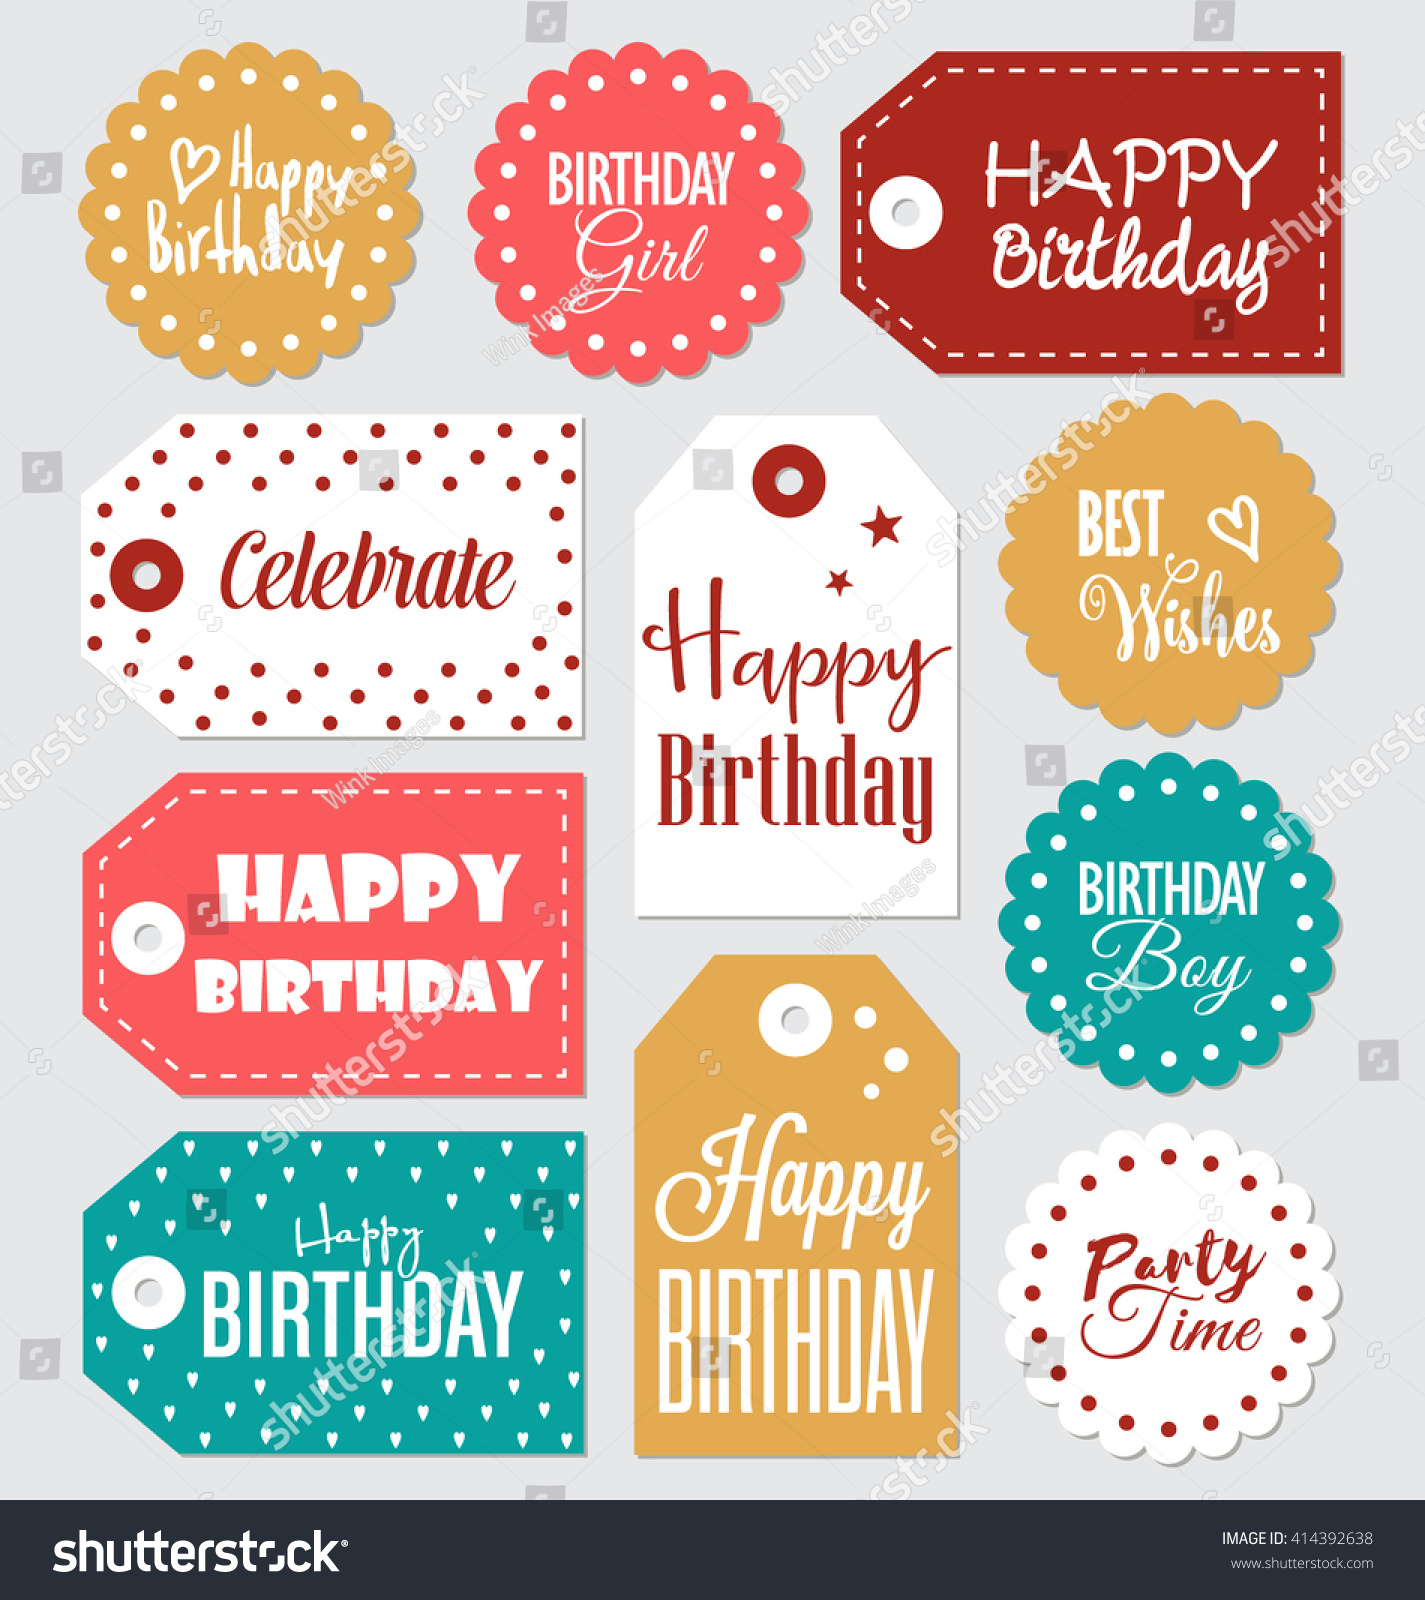 photograph relating to Happy Birthday Tag Printable identified as Fastened of Birthday present tags typographic Inventory Image 414392638